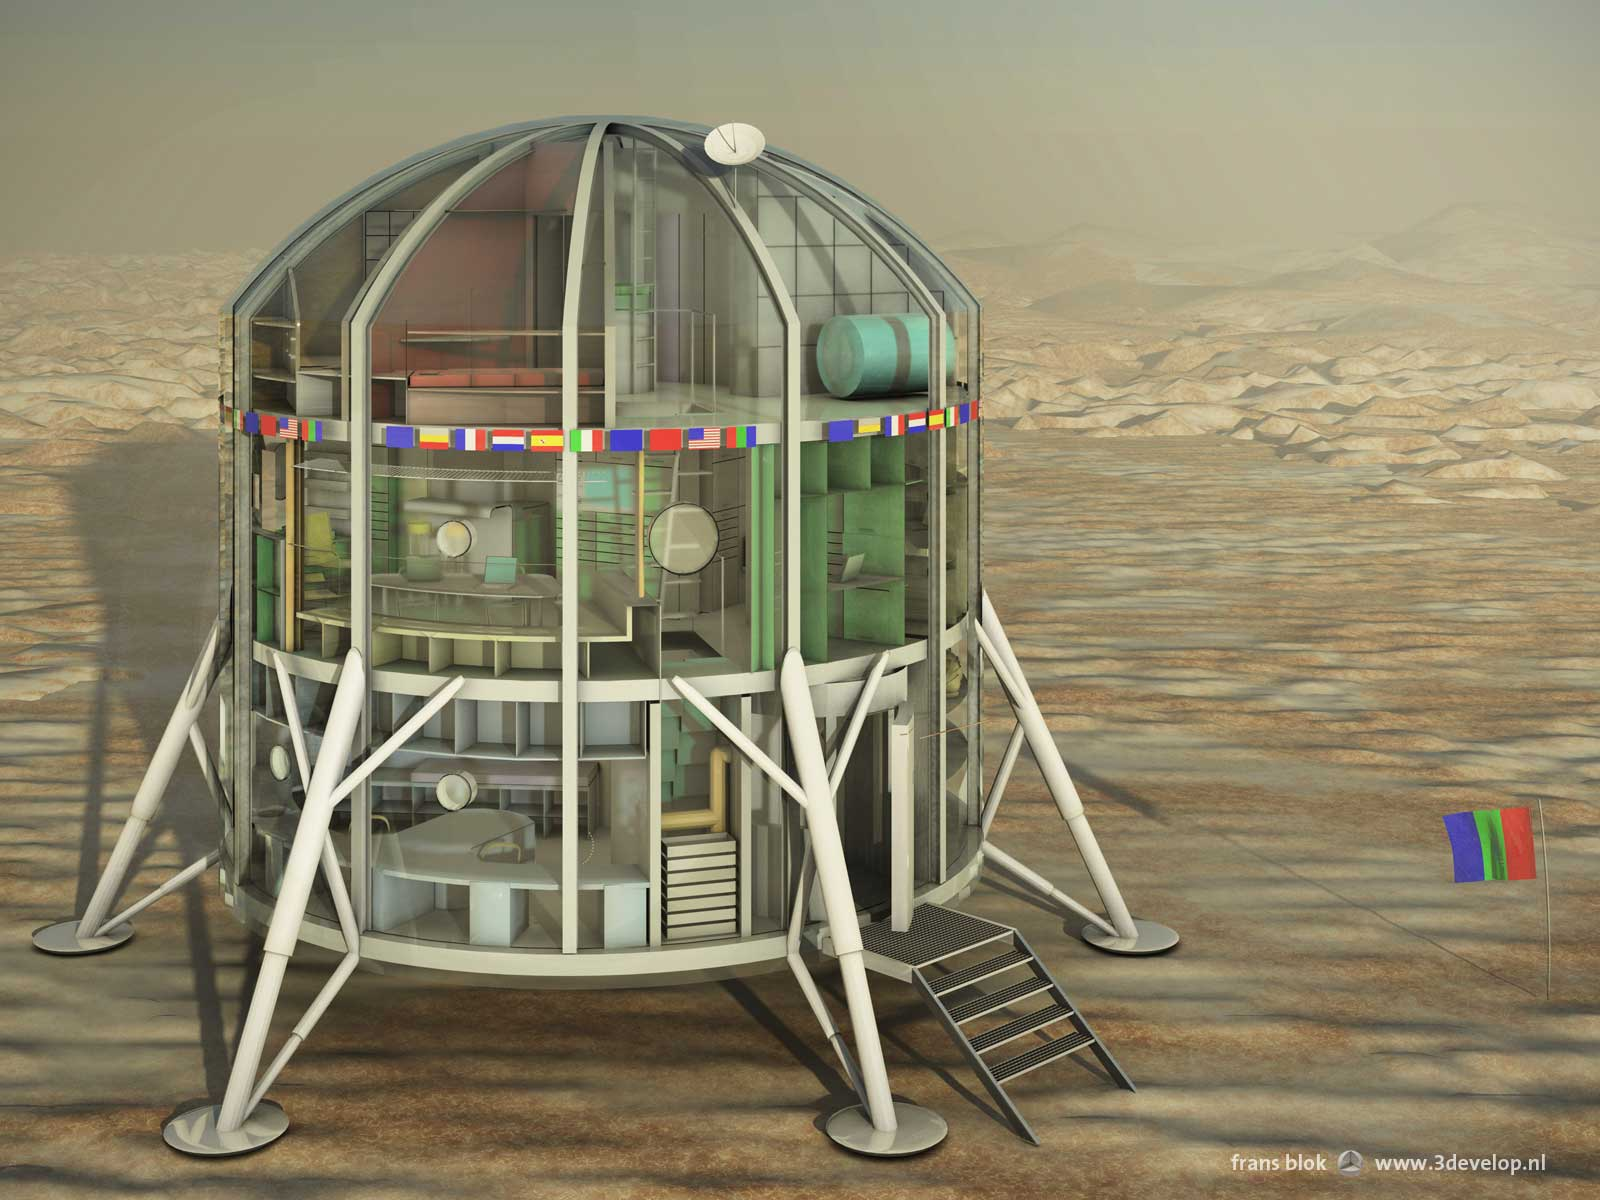 European Mars Analogue Research Station